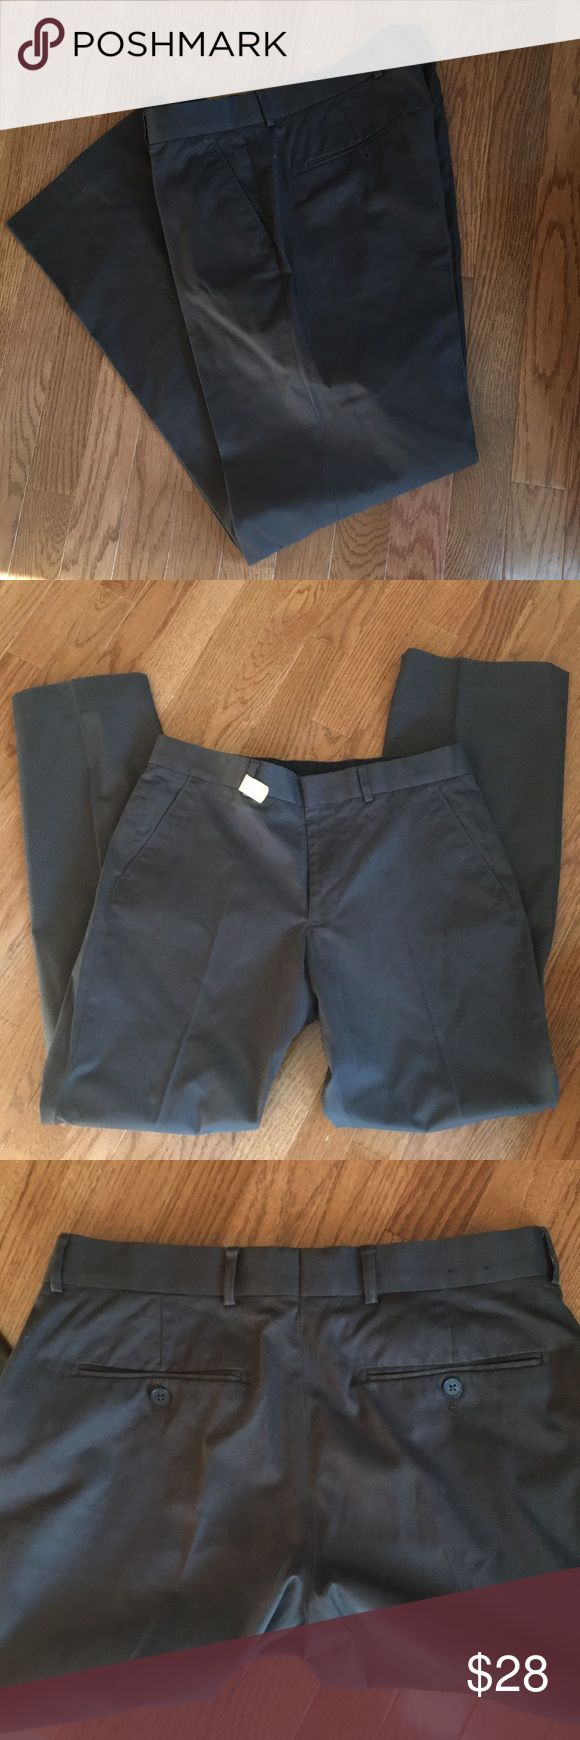 Men's Express Producer pants Charcoal Grey Sz30/32 Fresh from the dry cleaner!  Worn twice.  Excellent condition. Express Producer pants in Charcoal Grey. Size 30/32. Looks great with nearly every color!!  Great deal. BUNDLE for discount 👍🏼 Express Pants Dress